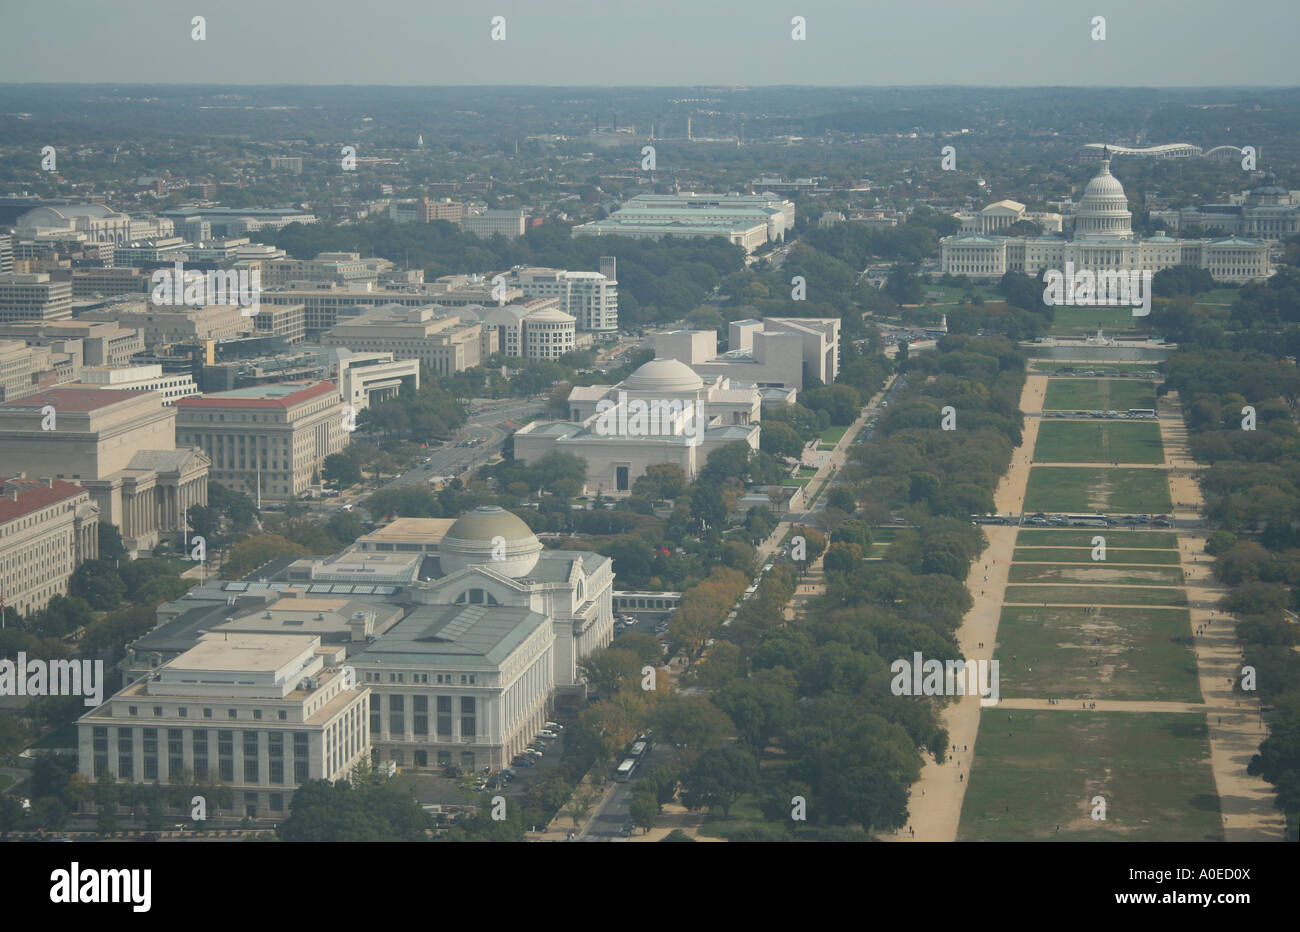 Aerial view of National Mall and US Capitol from Marine One JFK 8x10 Photo